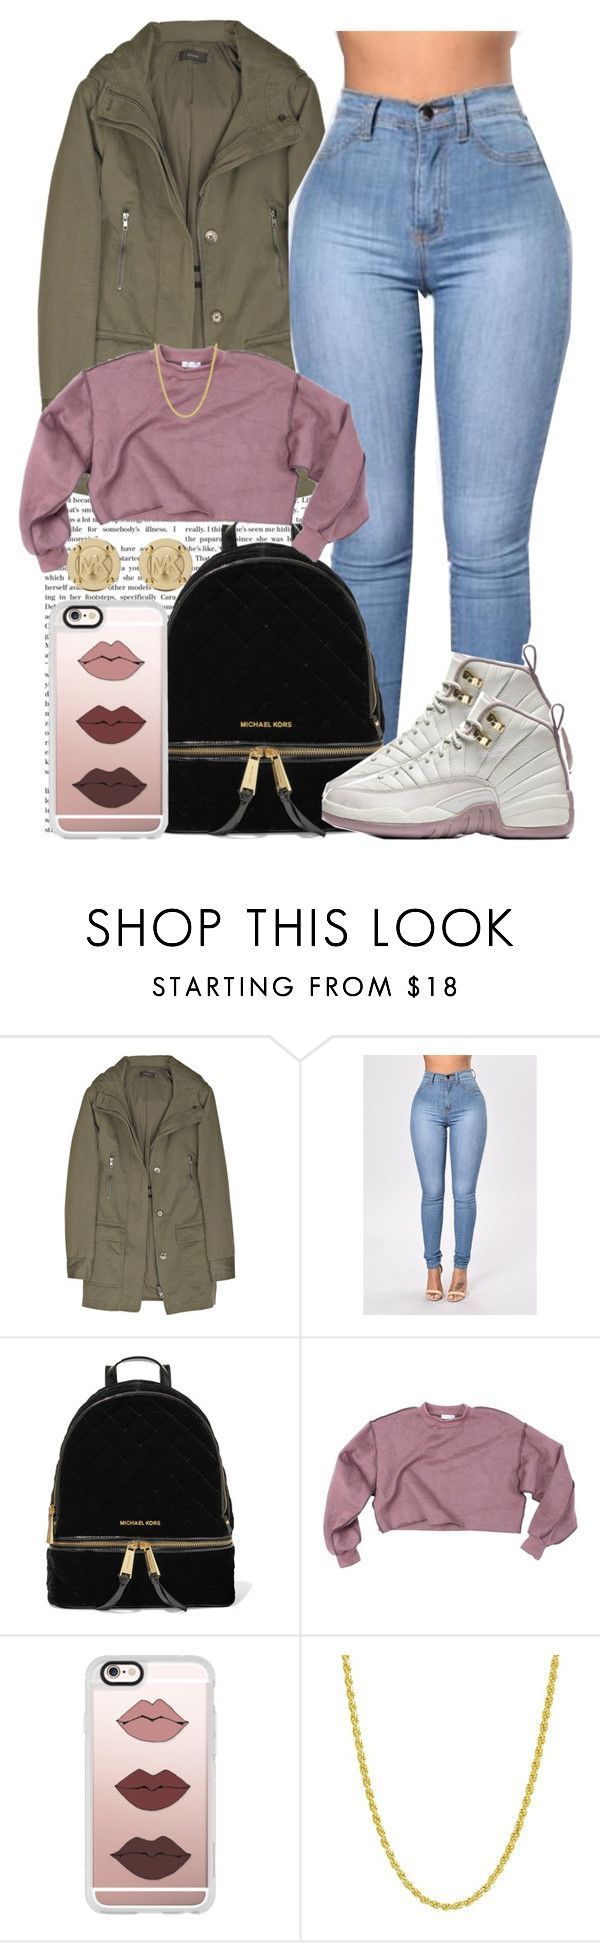 """Dusty Pink"" by goddessnaii ❤ liked on Polyvore featuring Joseph, MICHAEL Michael Kors, Casetify, Pori and Michael Kors"